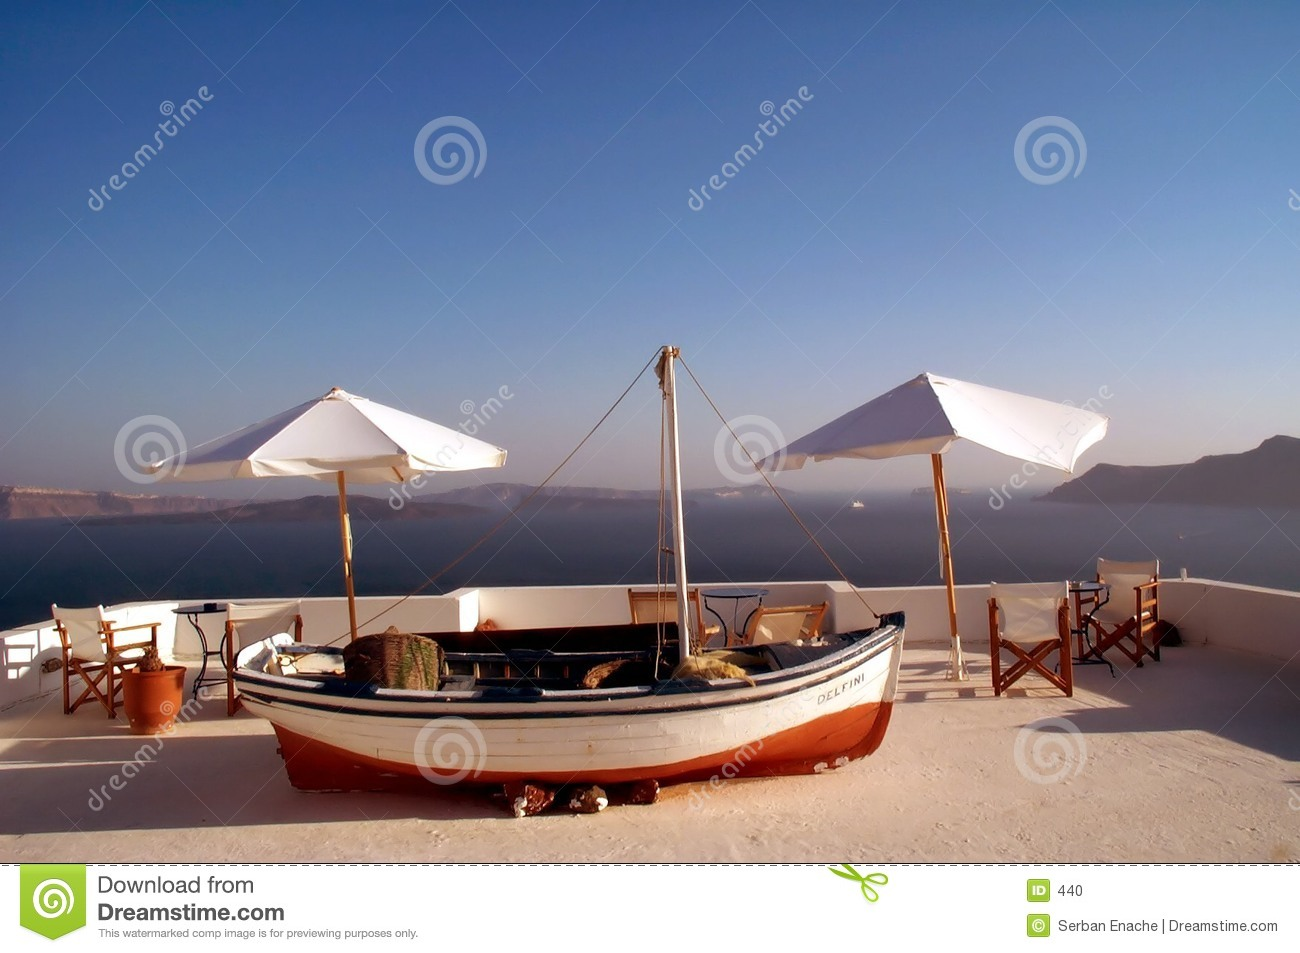 Boat and tables